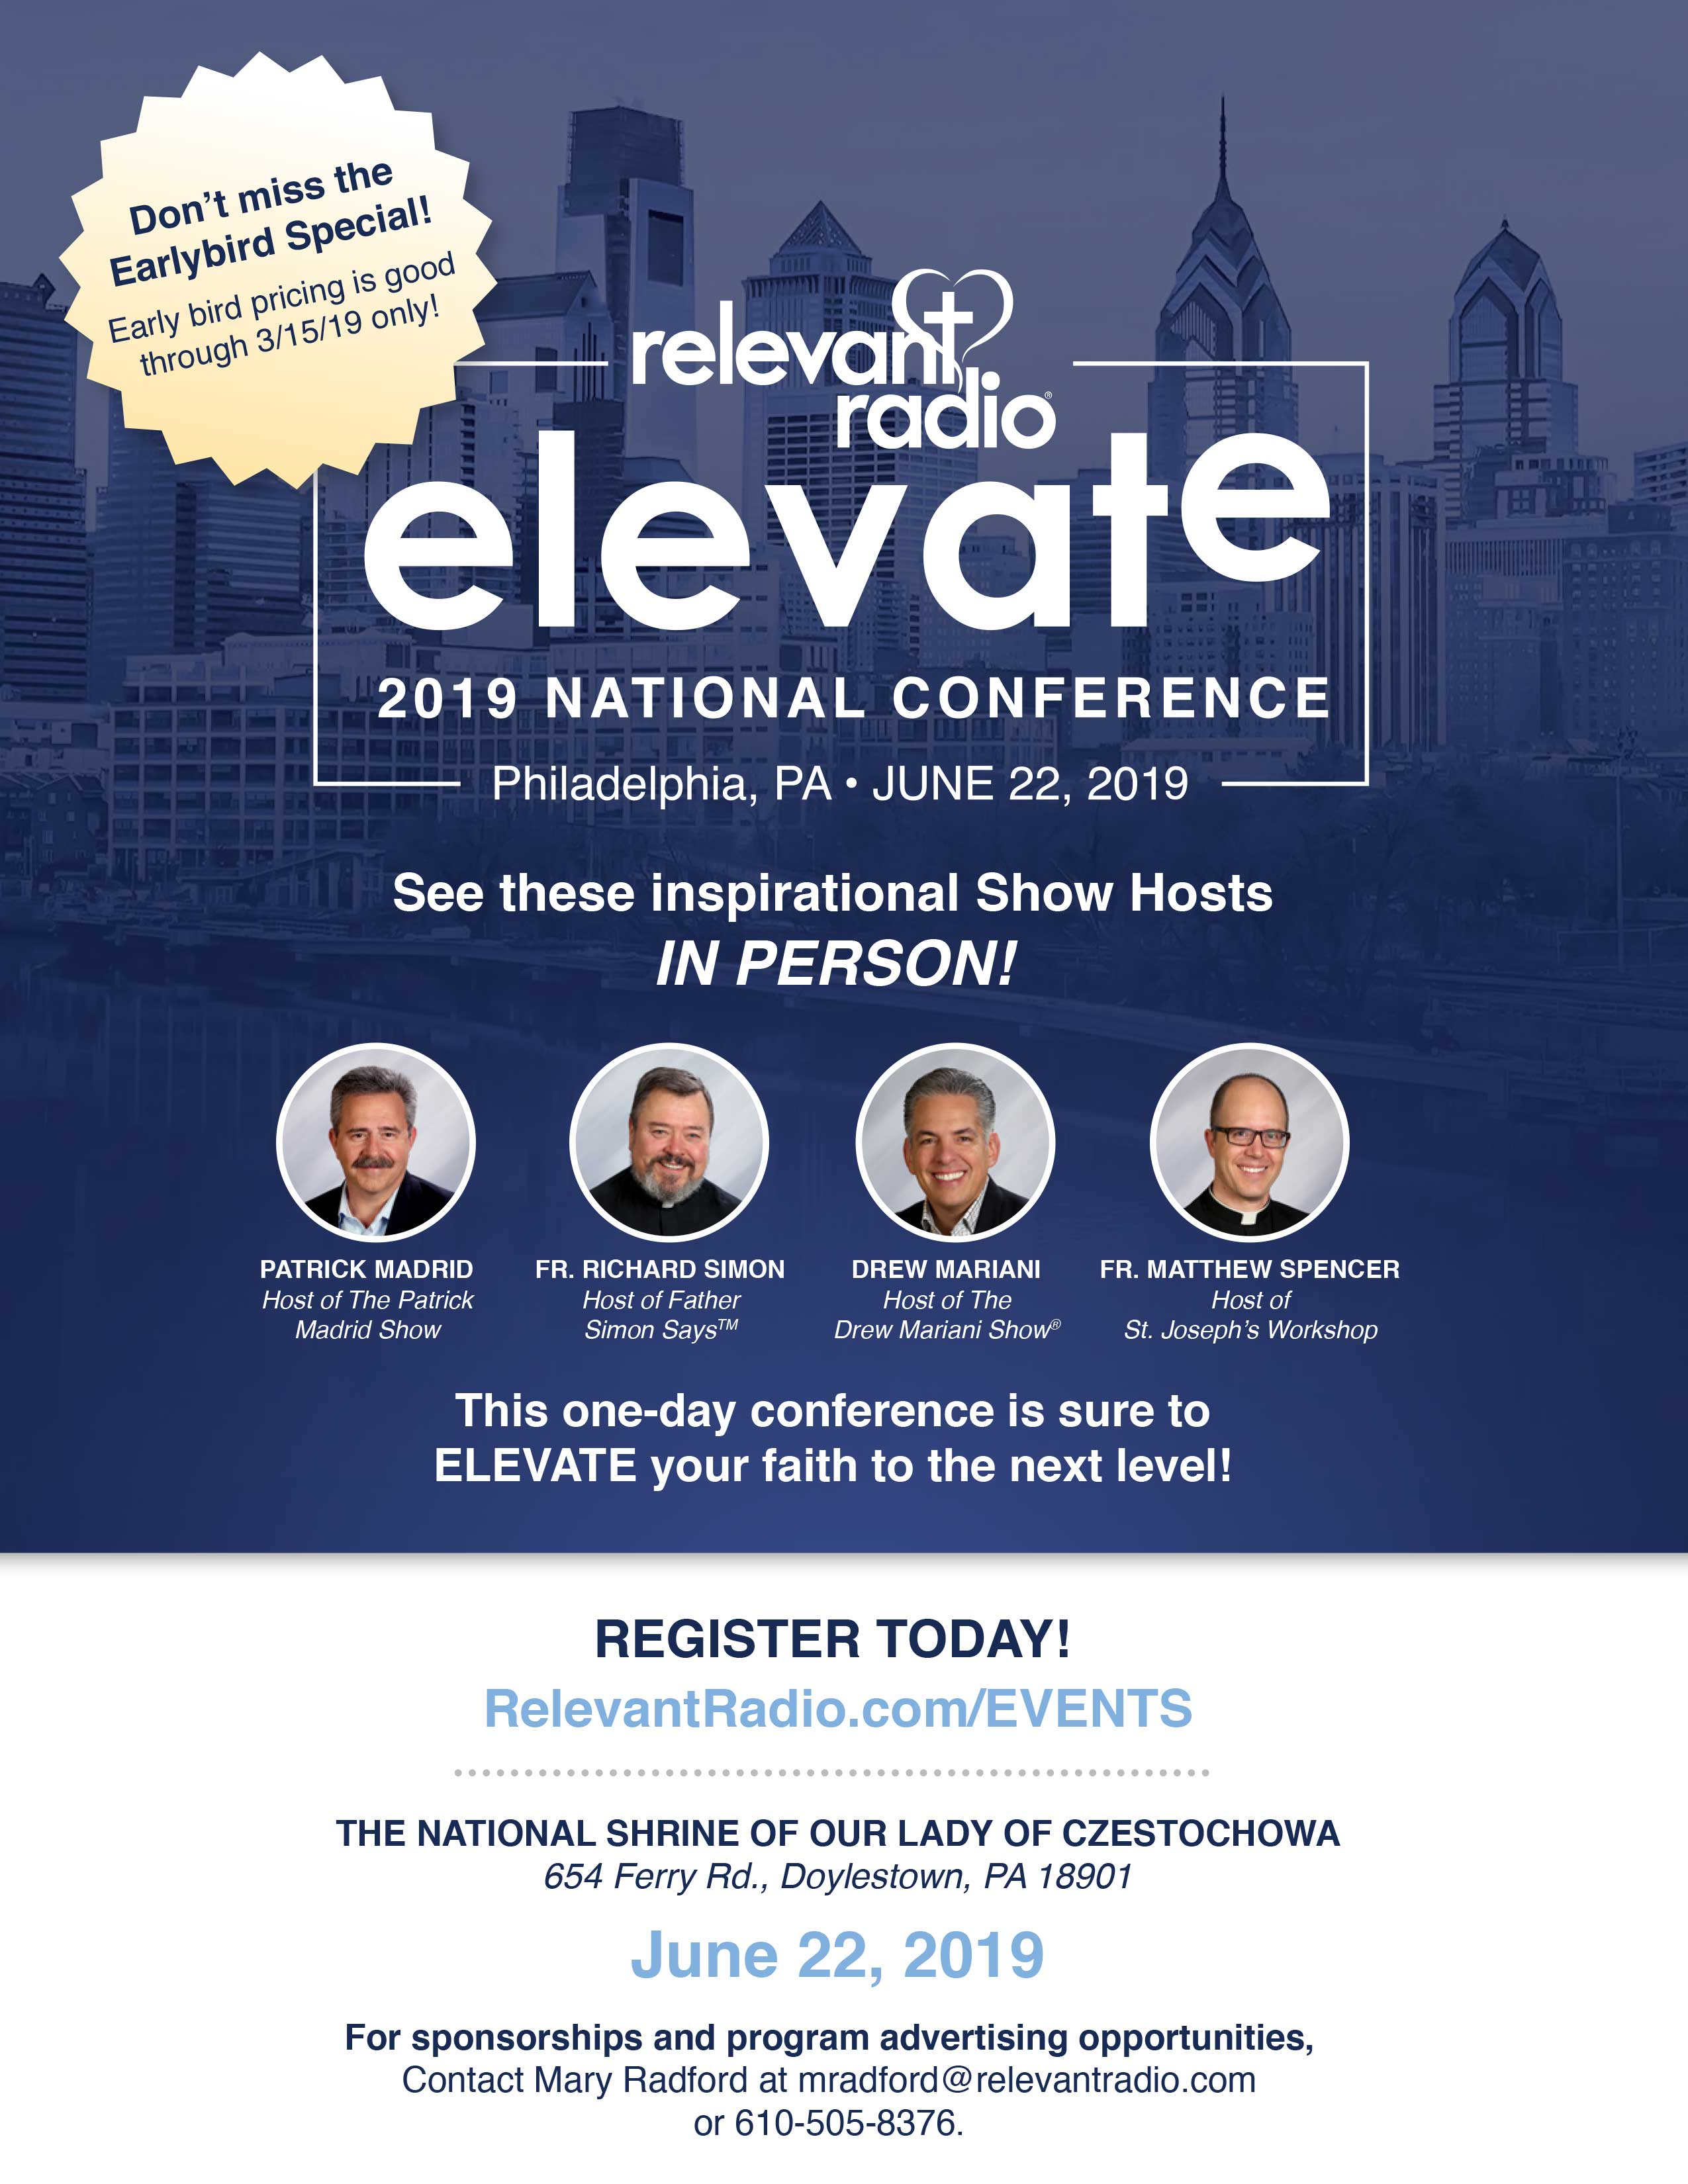 PA: Relevant Radio National ELEVATE Conference at the National Shrine of Our Lady of Czestochowa